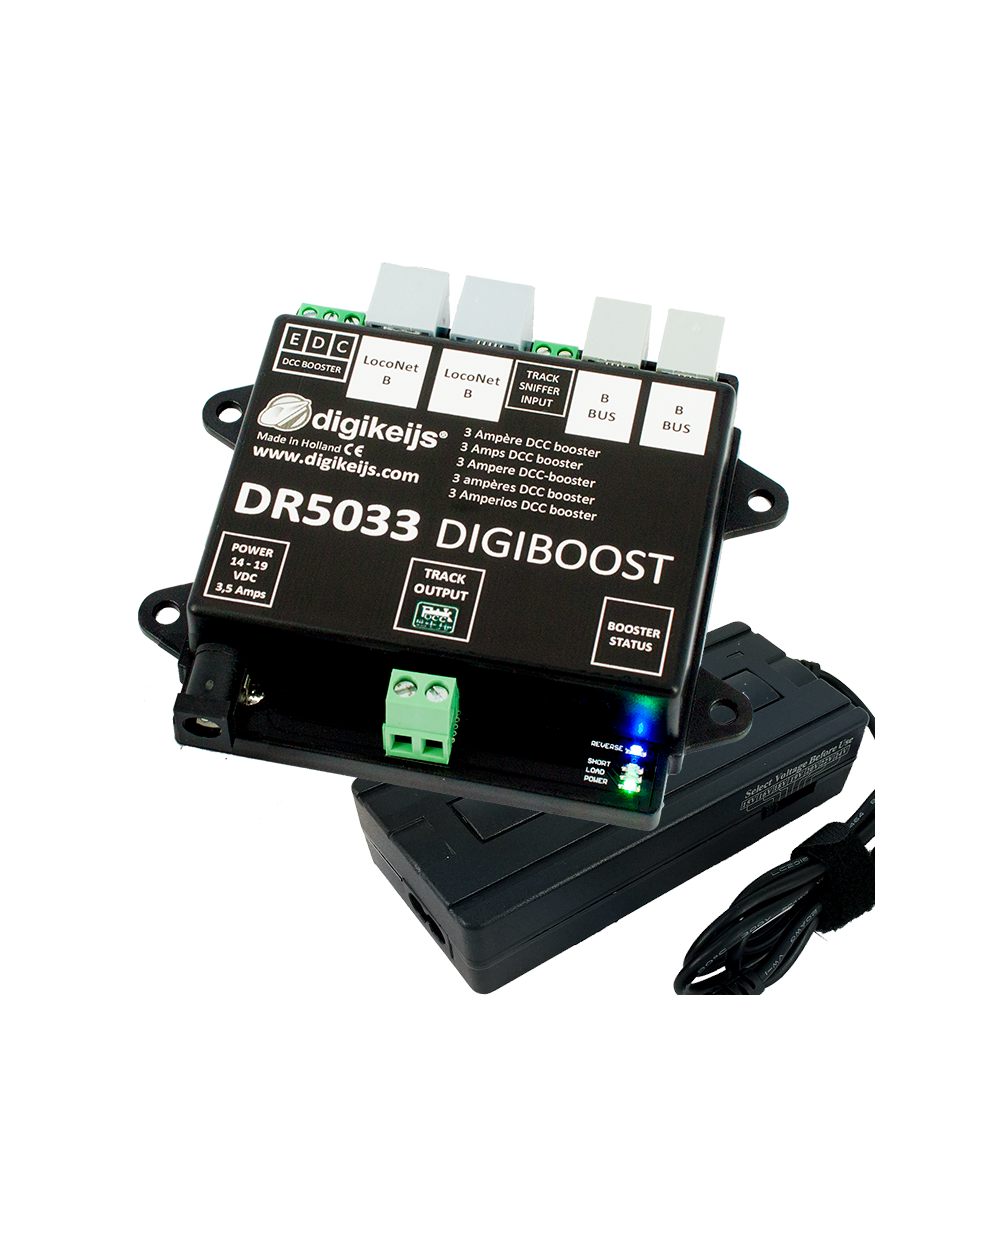 DR5033-ADJ DCC Booster 3 Amps